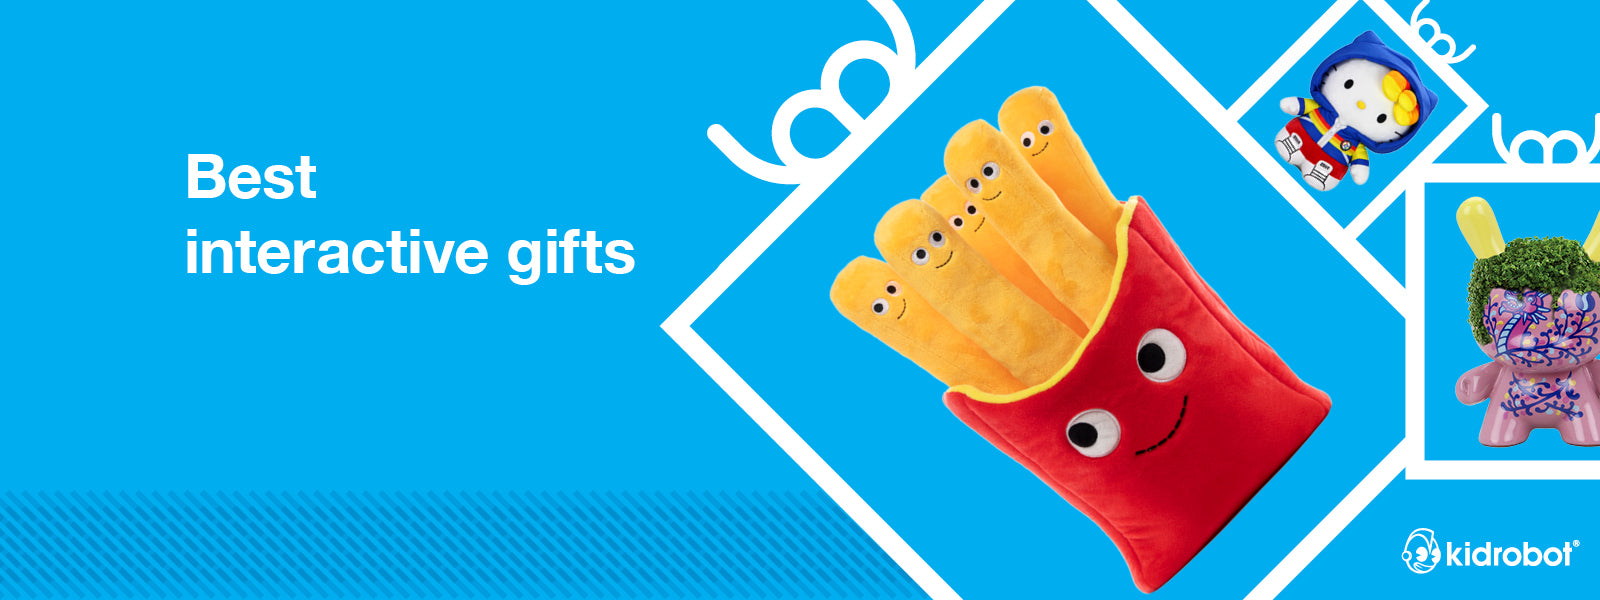 Kidrobot Gift Guide: Best Interactive Gifts and Toys